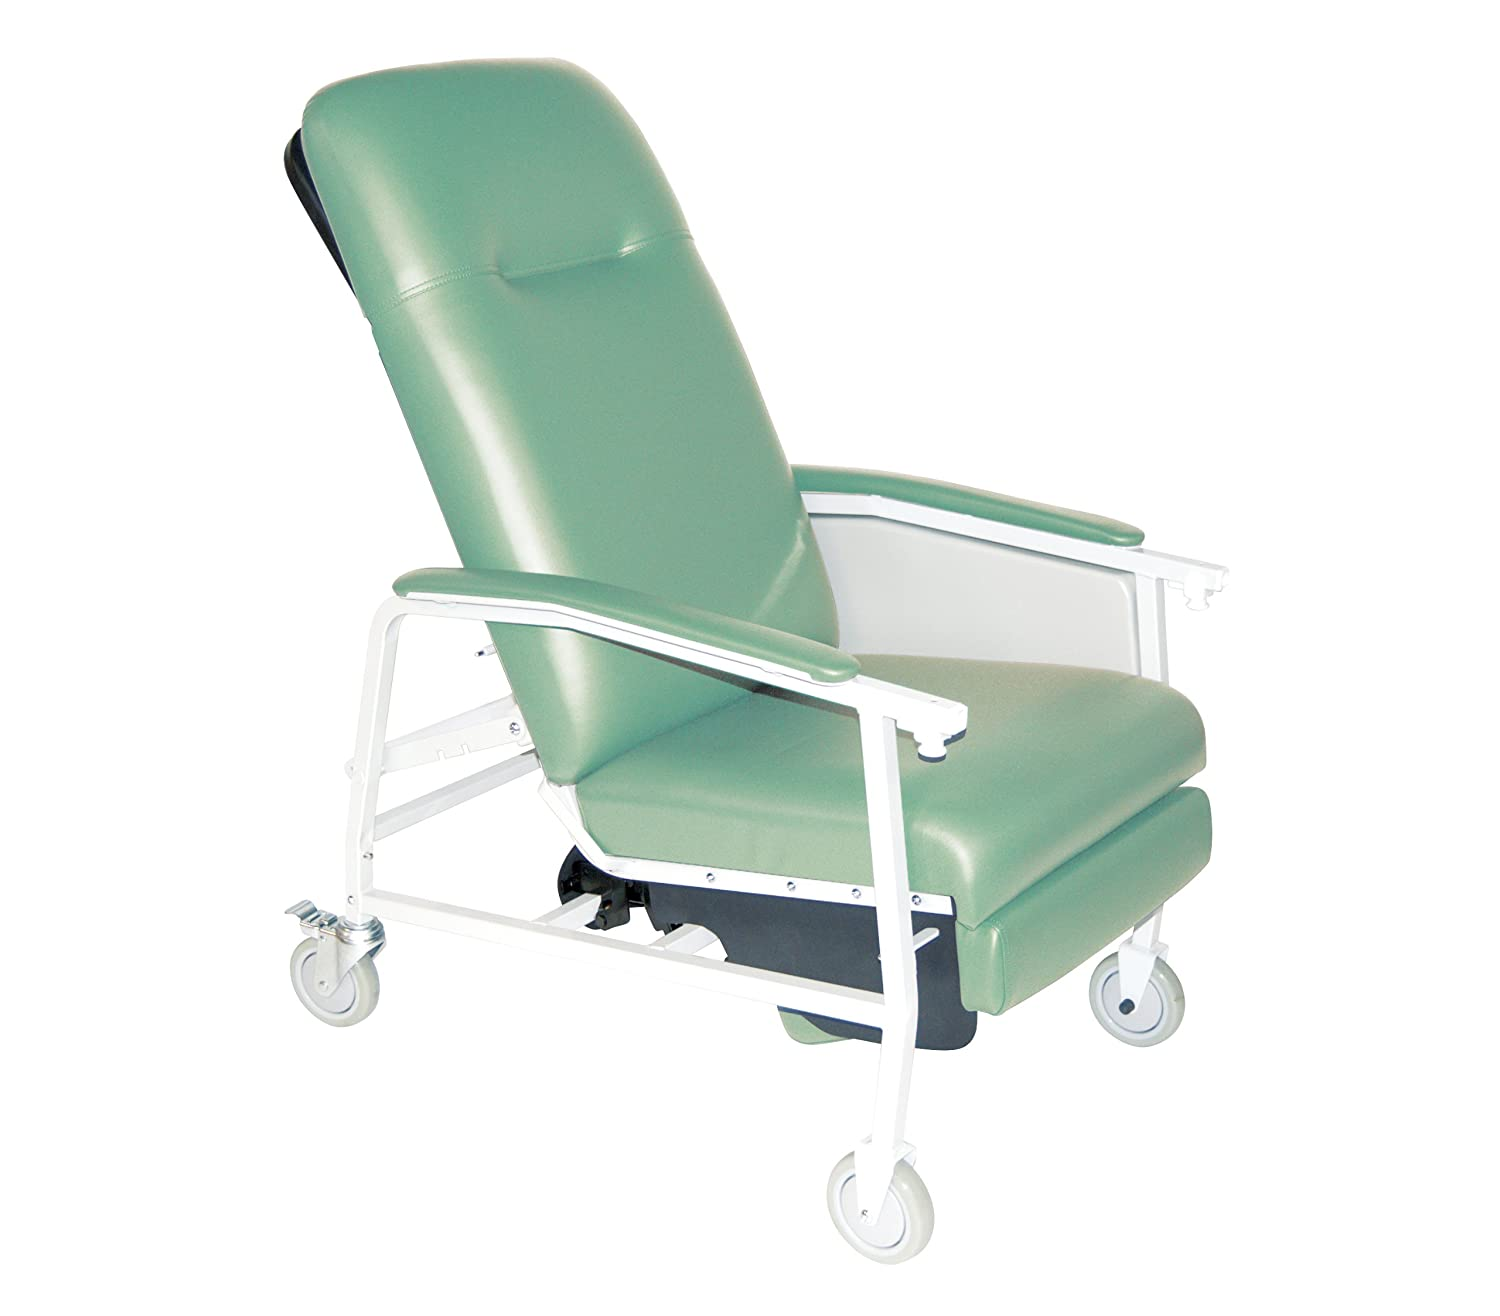 room chairs medical series bnr chair prod seating products hospital recliner corporation amico daphne furniture patient